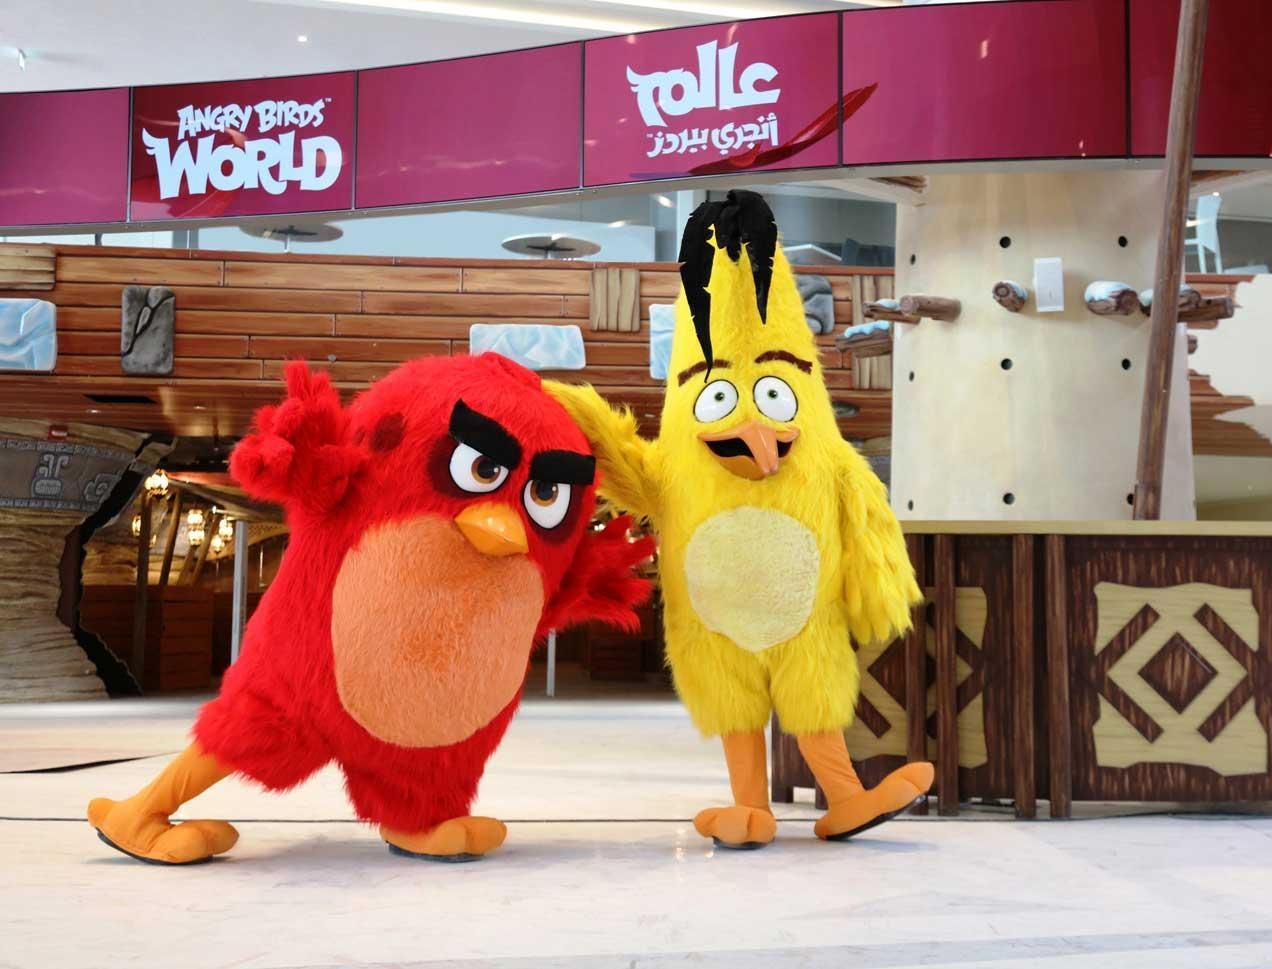 Rocas & Design worked on the newly-opened Angry Birds World in Doha